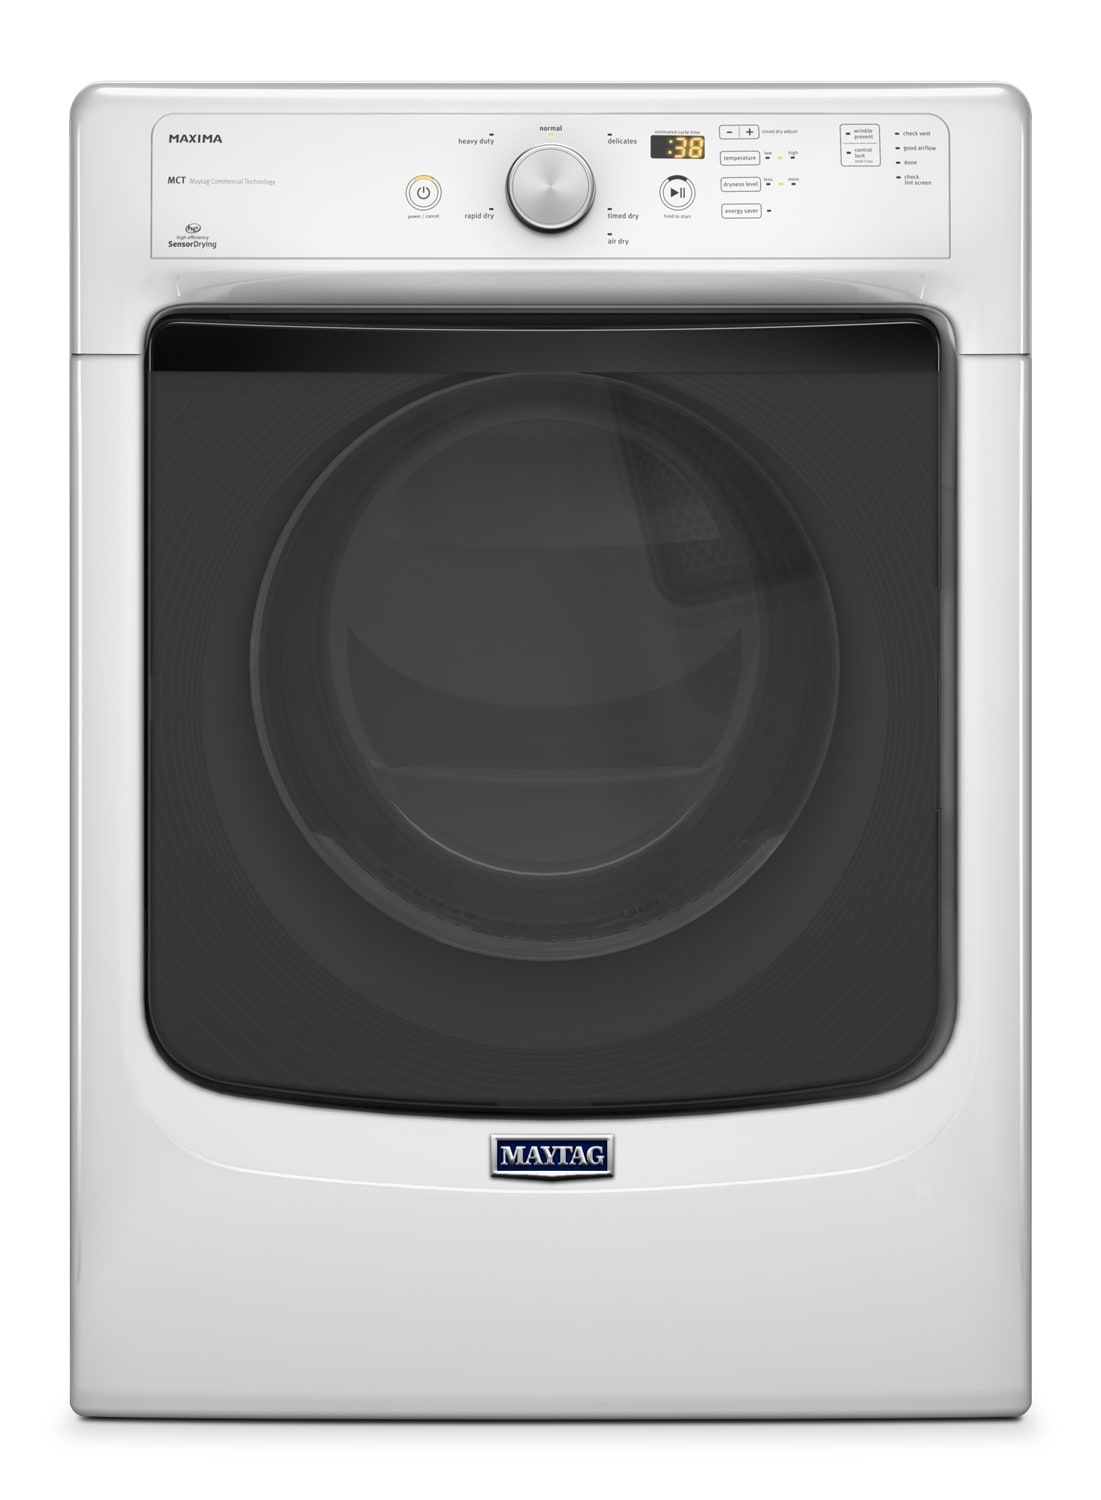 Washers and Dryers - Maytag White Electric Dryer (7.4 Cu. Ft.) - YMED3100DW